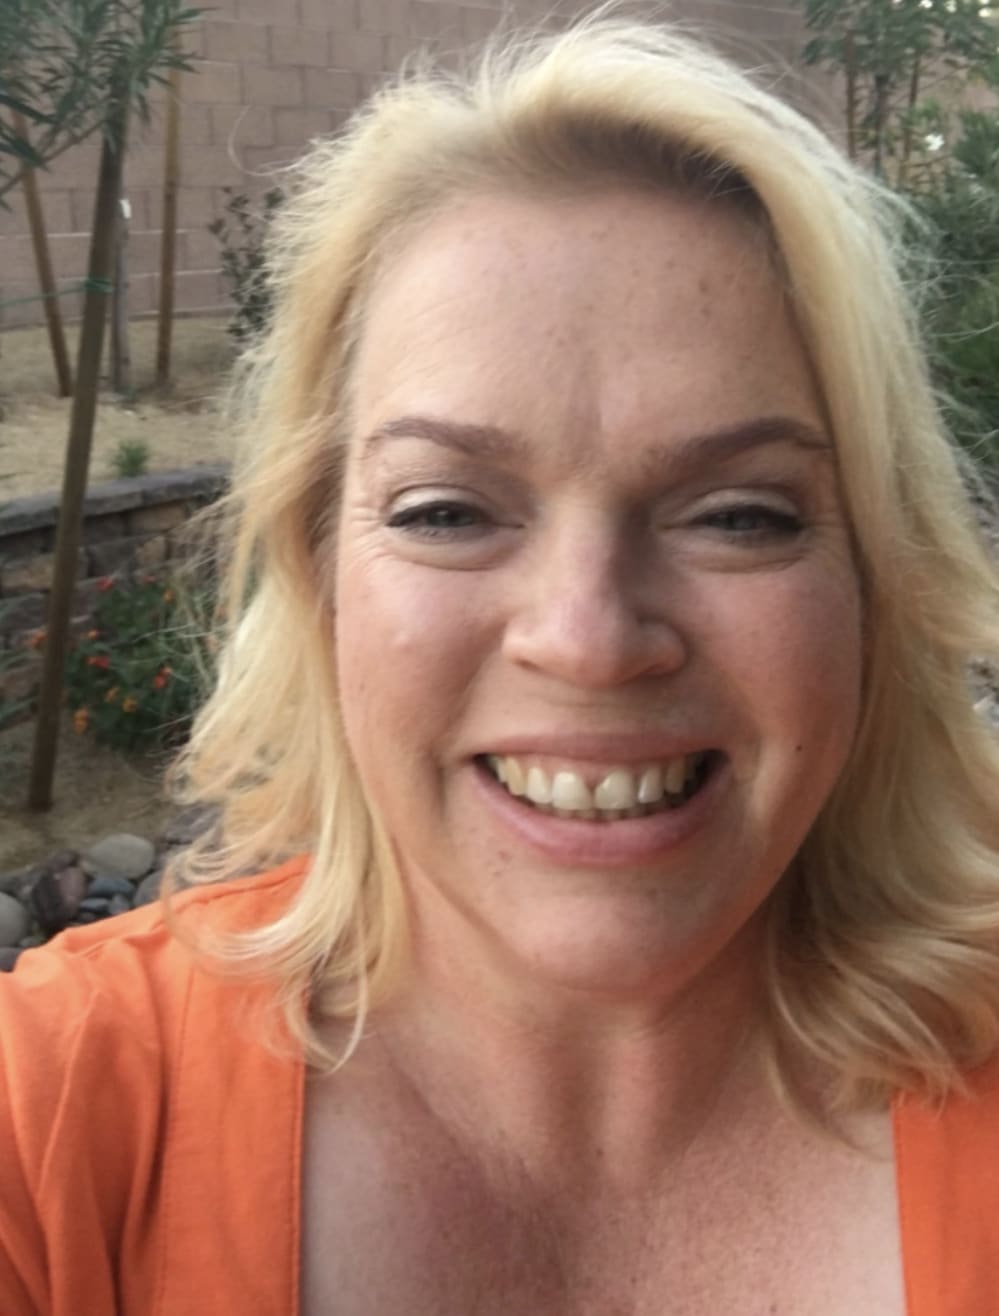 Sister Wives: Janelle Brown Weight Loss Shines Through In season 14